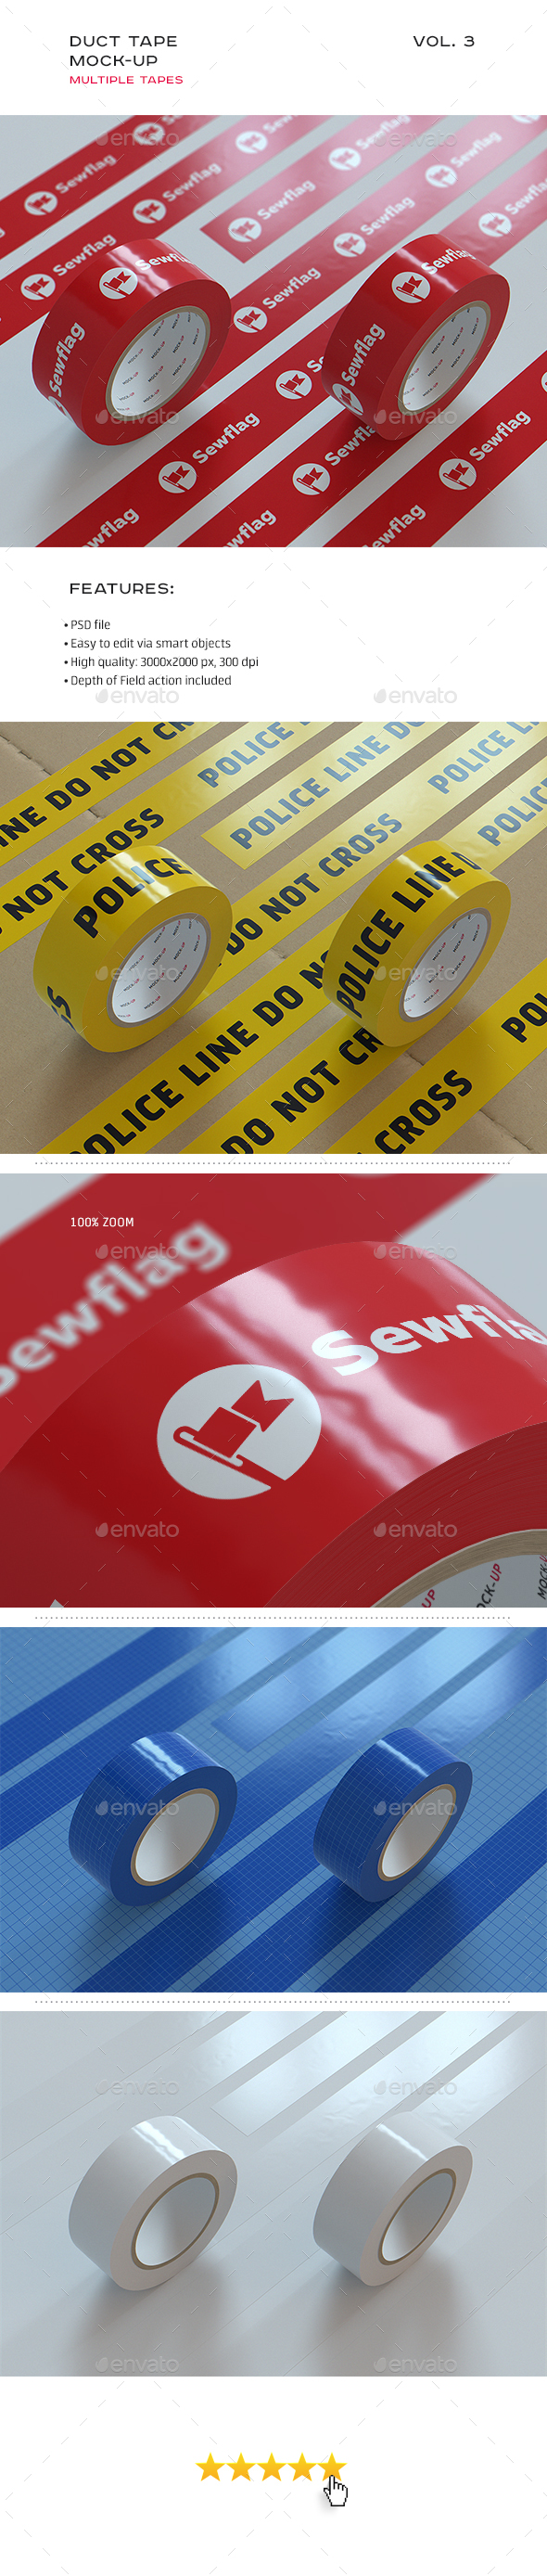 Duct Tape Mock-up vol. 3 (Stationery)